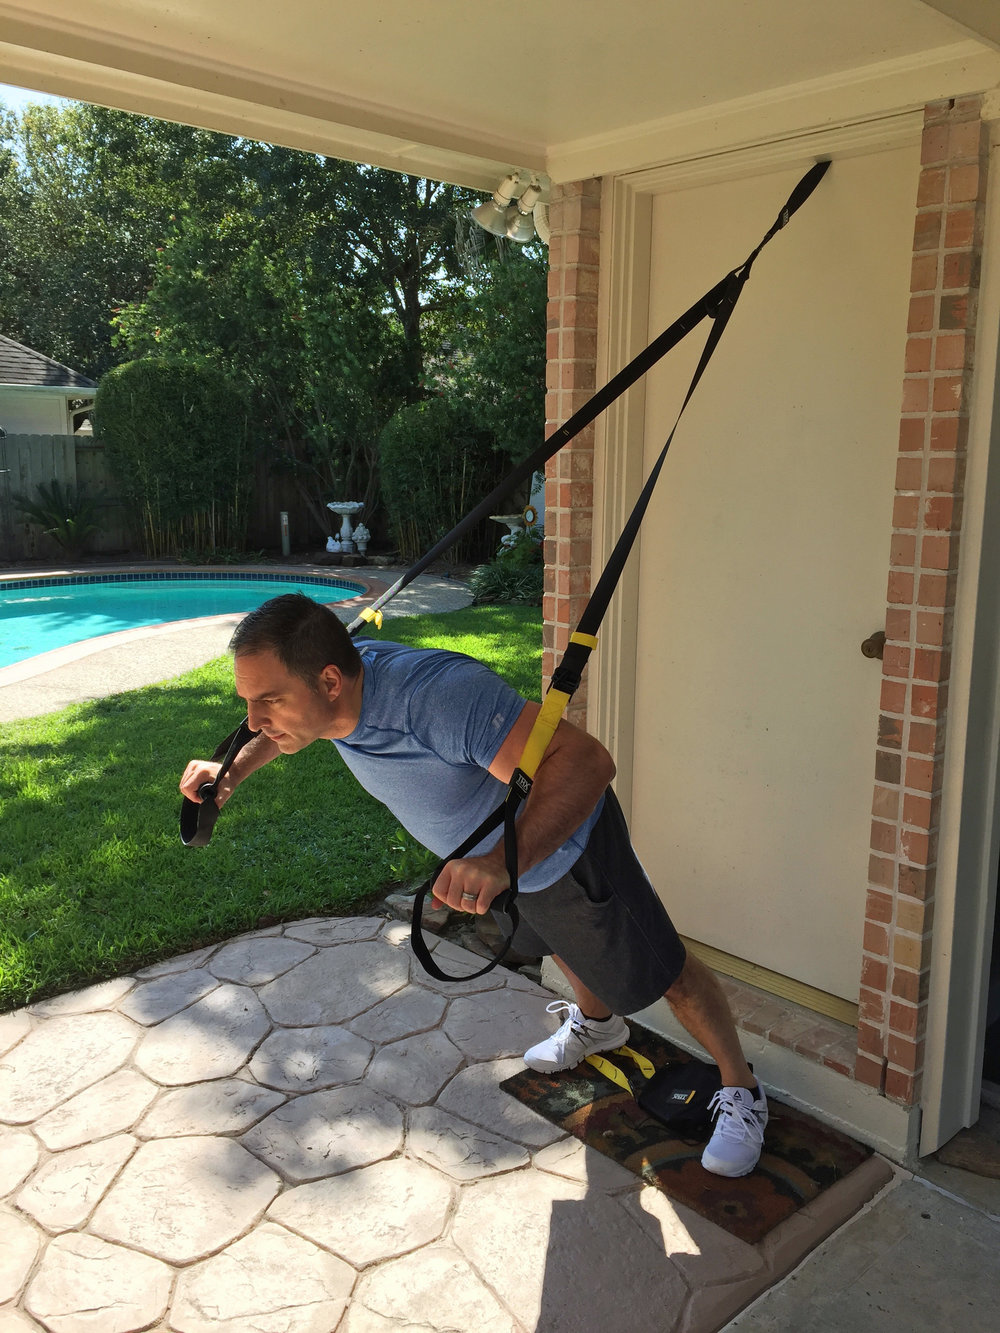 TRX will really challenge your limits with just the weight of your own body